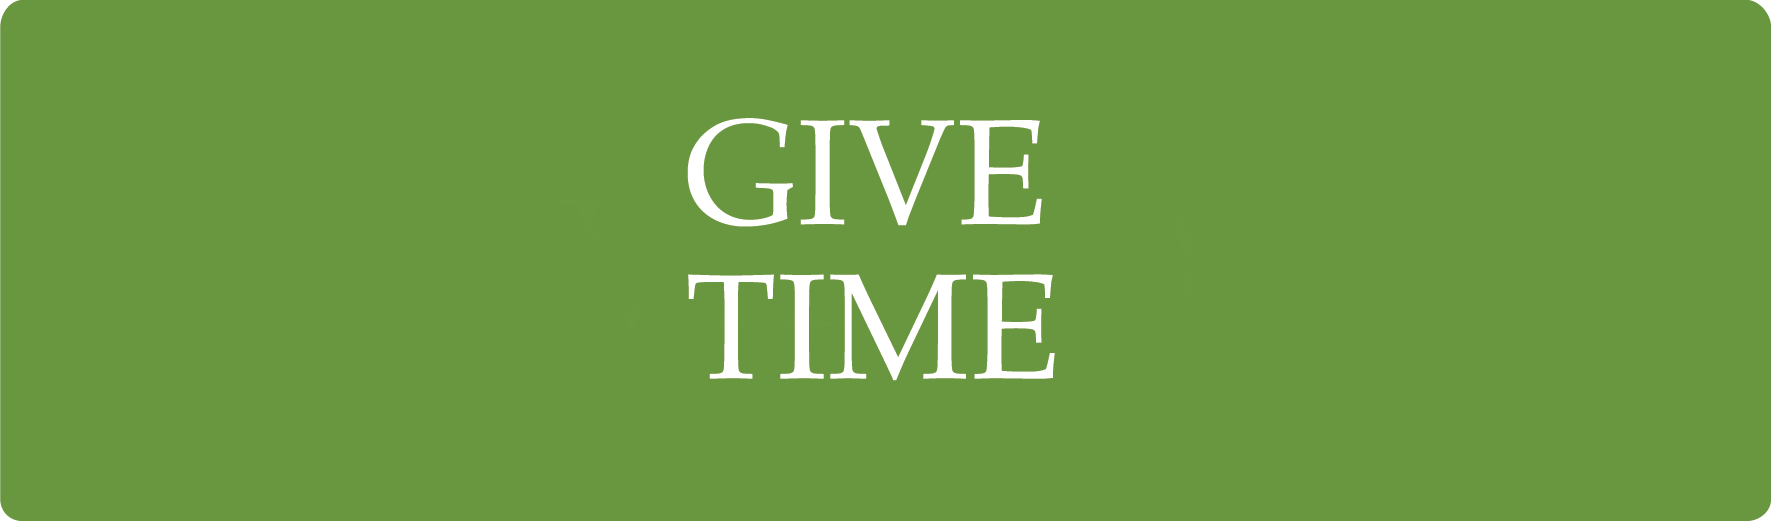 GIVE_TIME.png